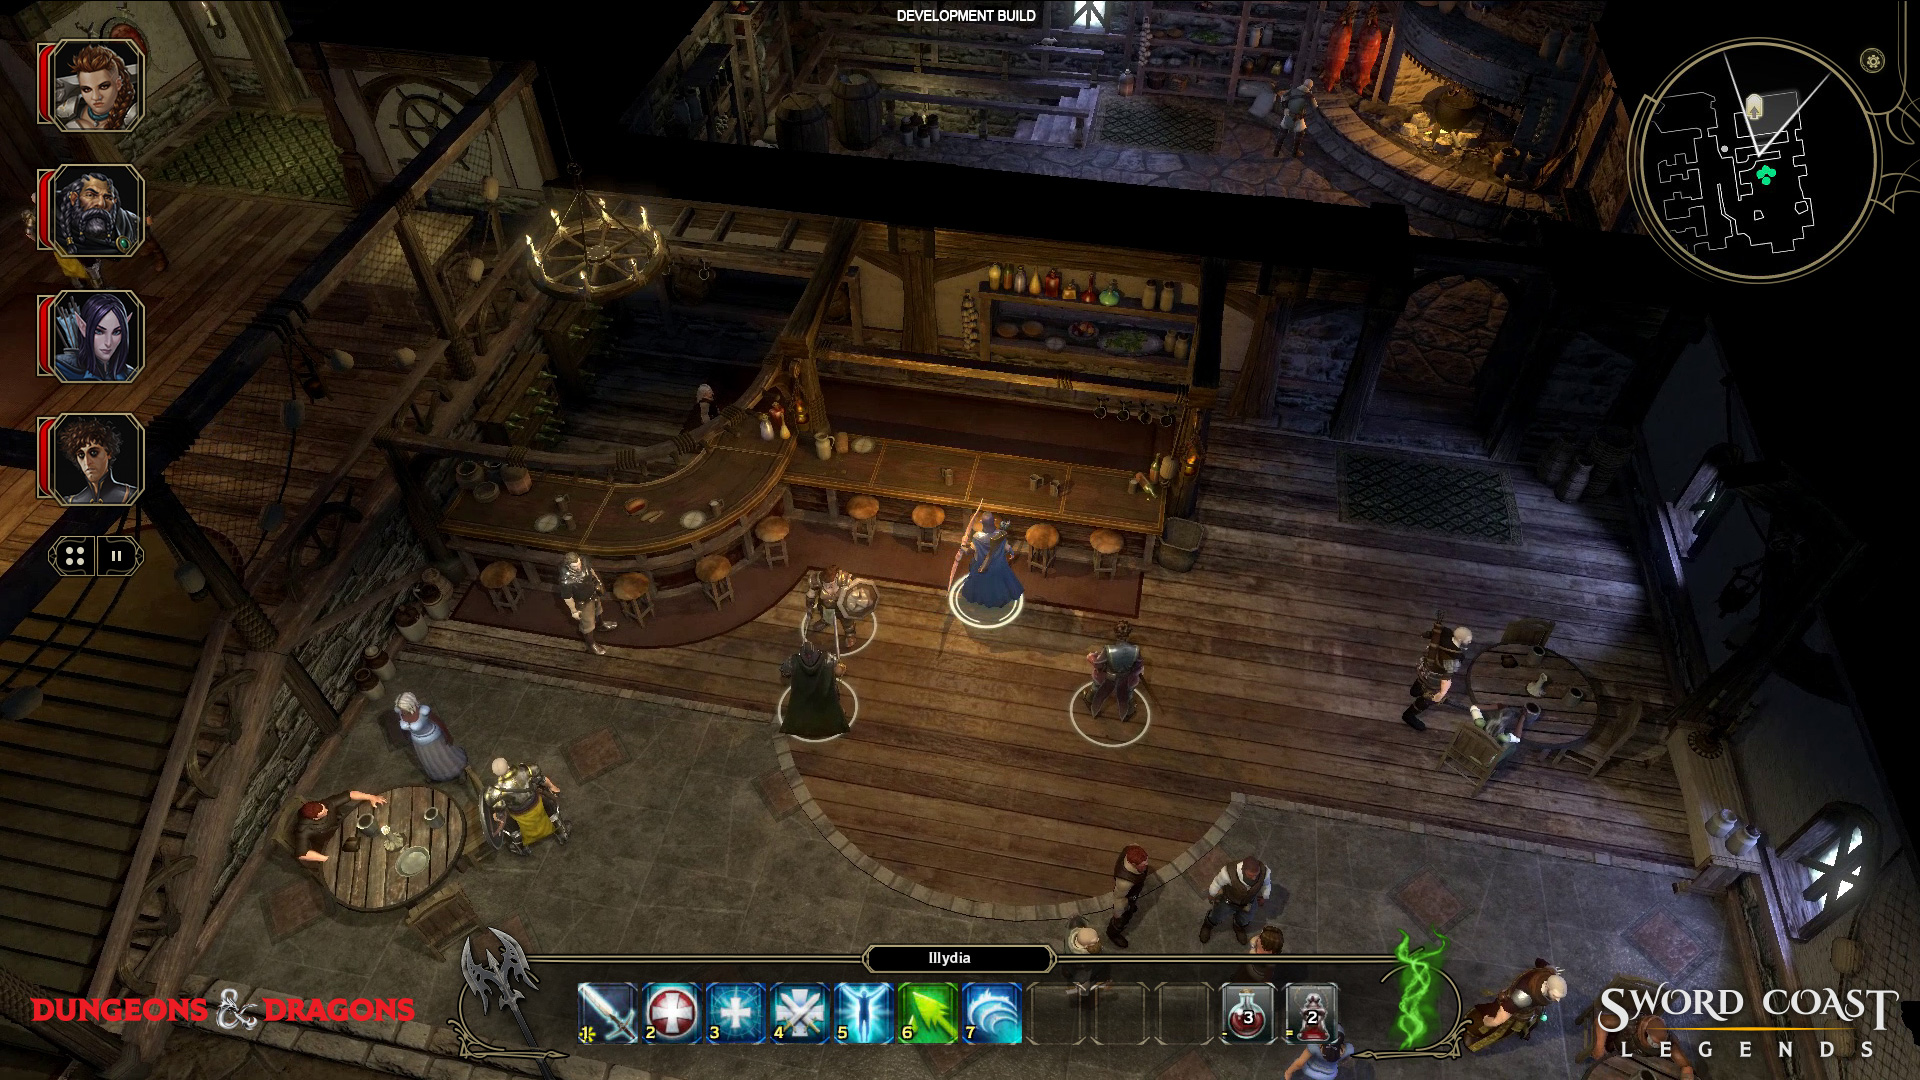 Sword Coast Legends image 2